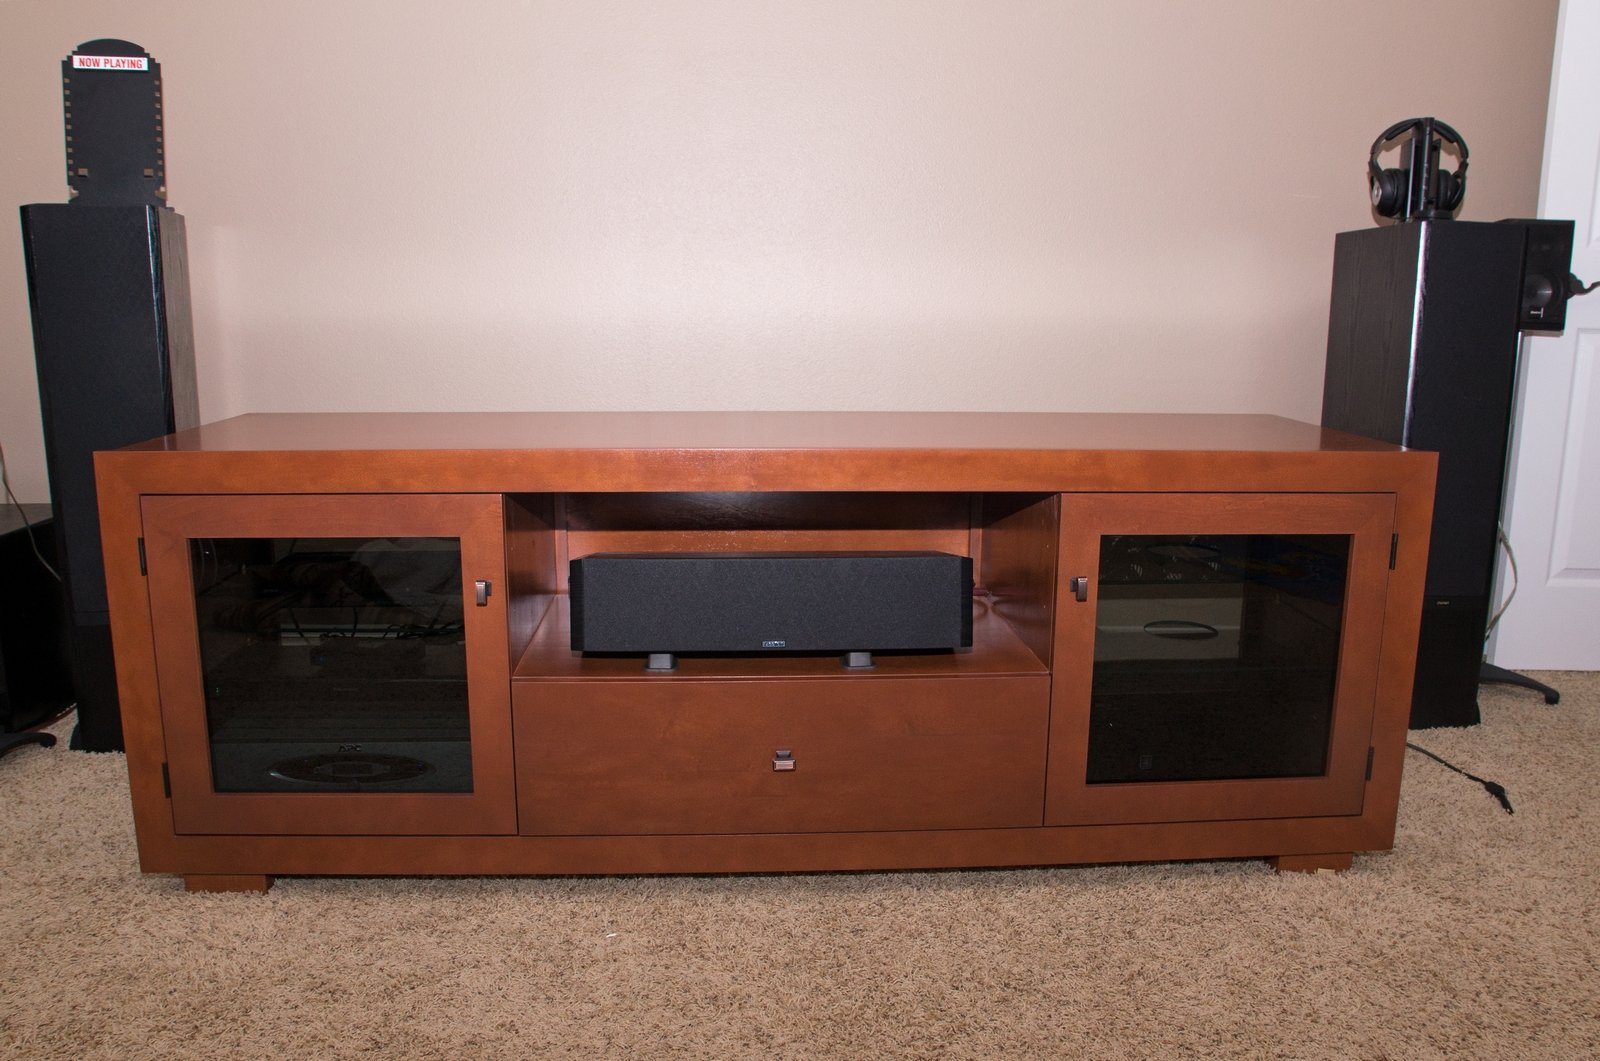 standout designs picture thread page 11 avs forum home theater